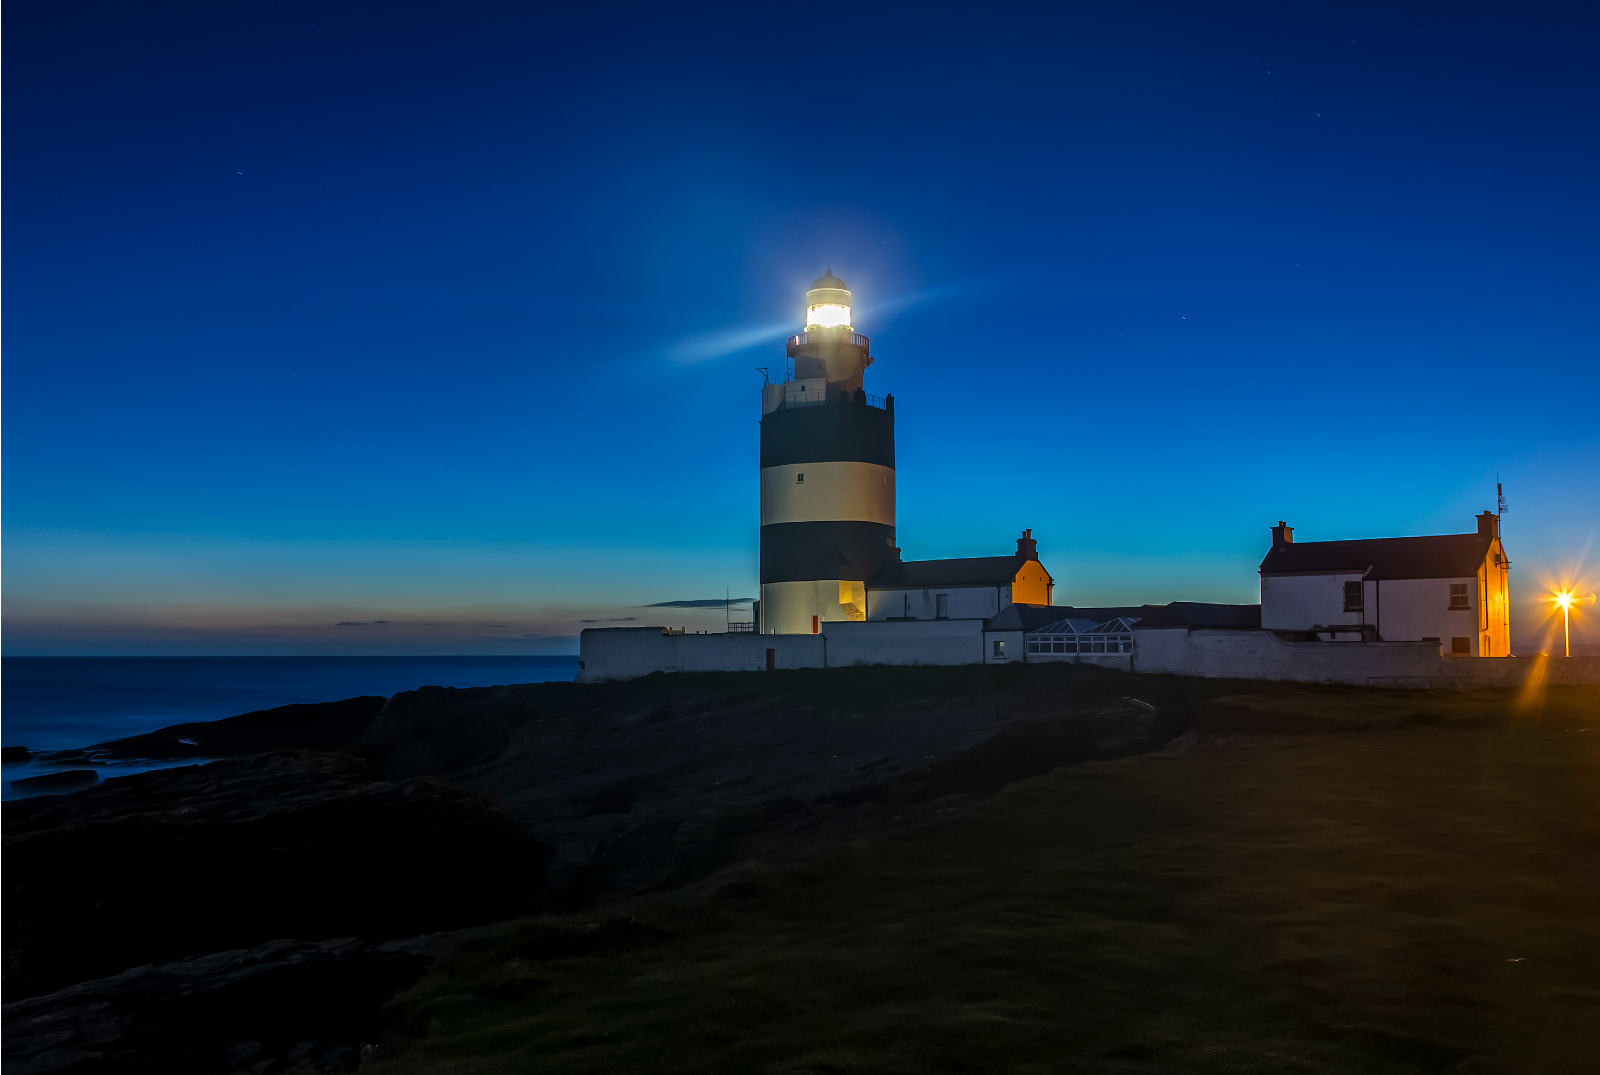 Hook lighthouse 1 1600 by 1075